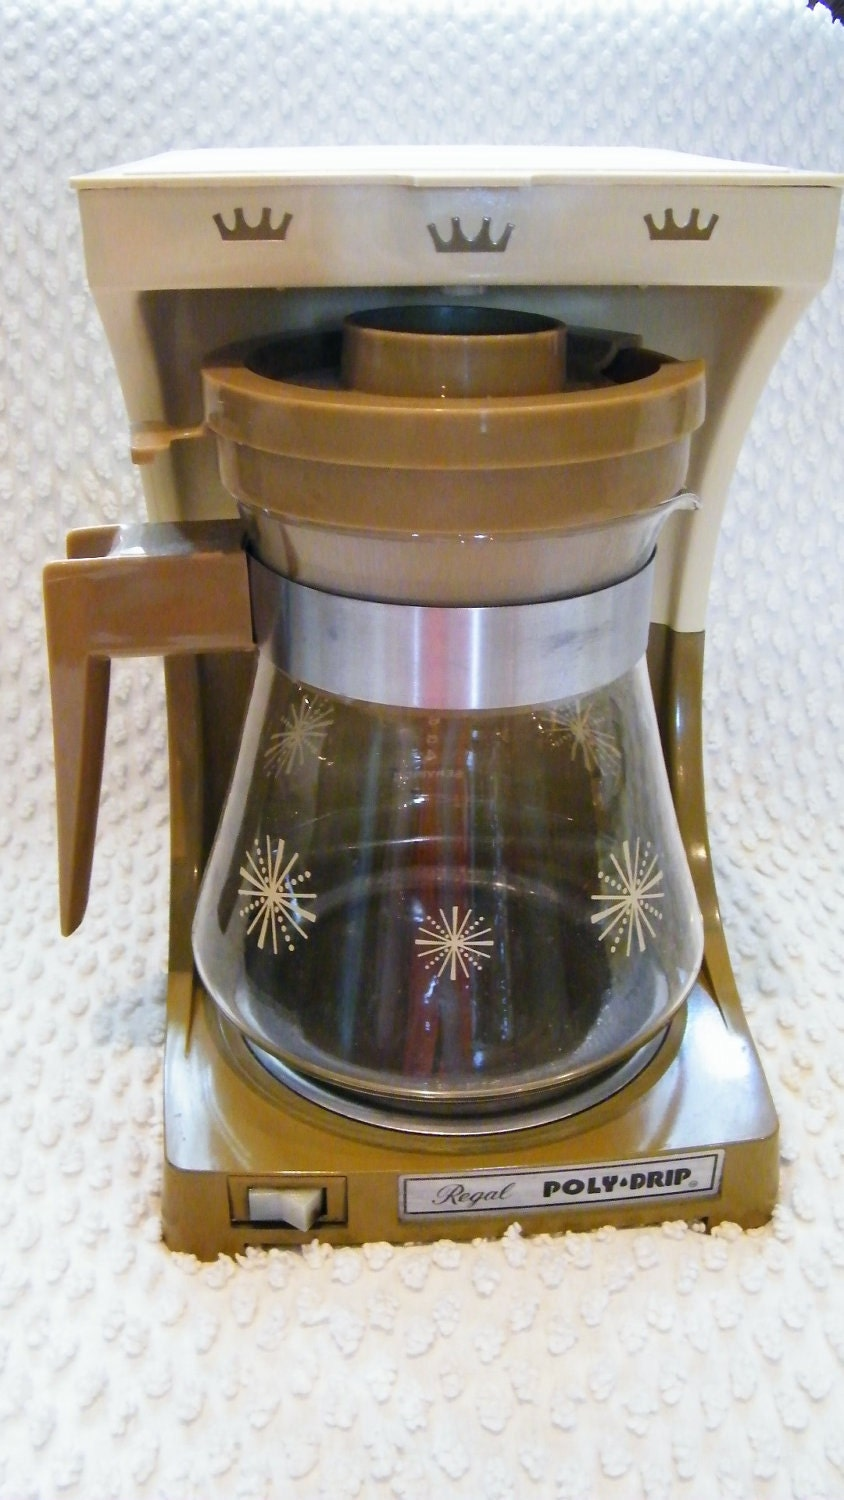 Old Drip Coffee Maker : Classic 1970s Regal Coffee Maker Works Great by hmmosko on Etsy